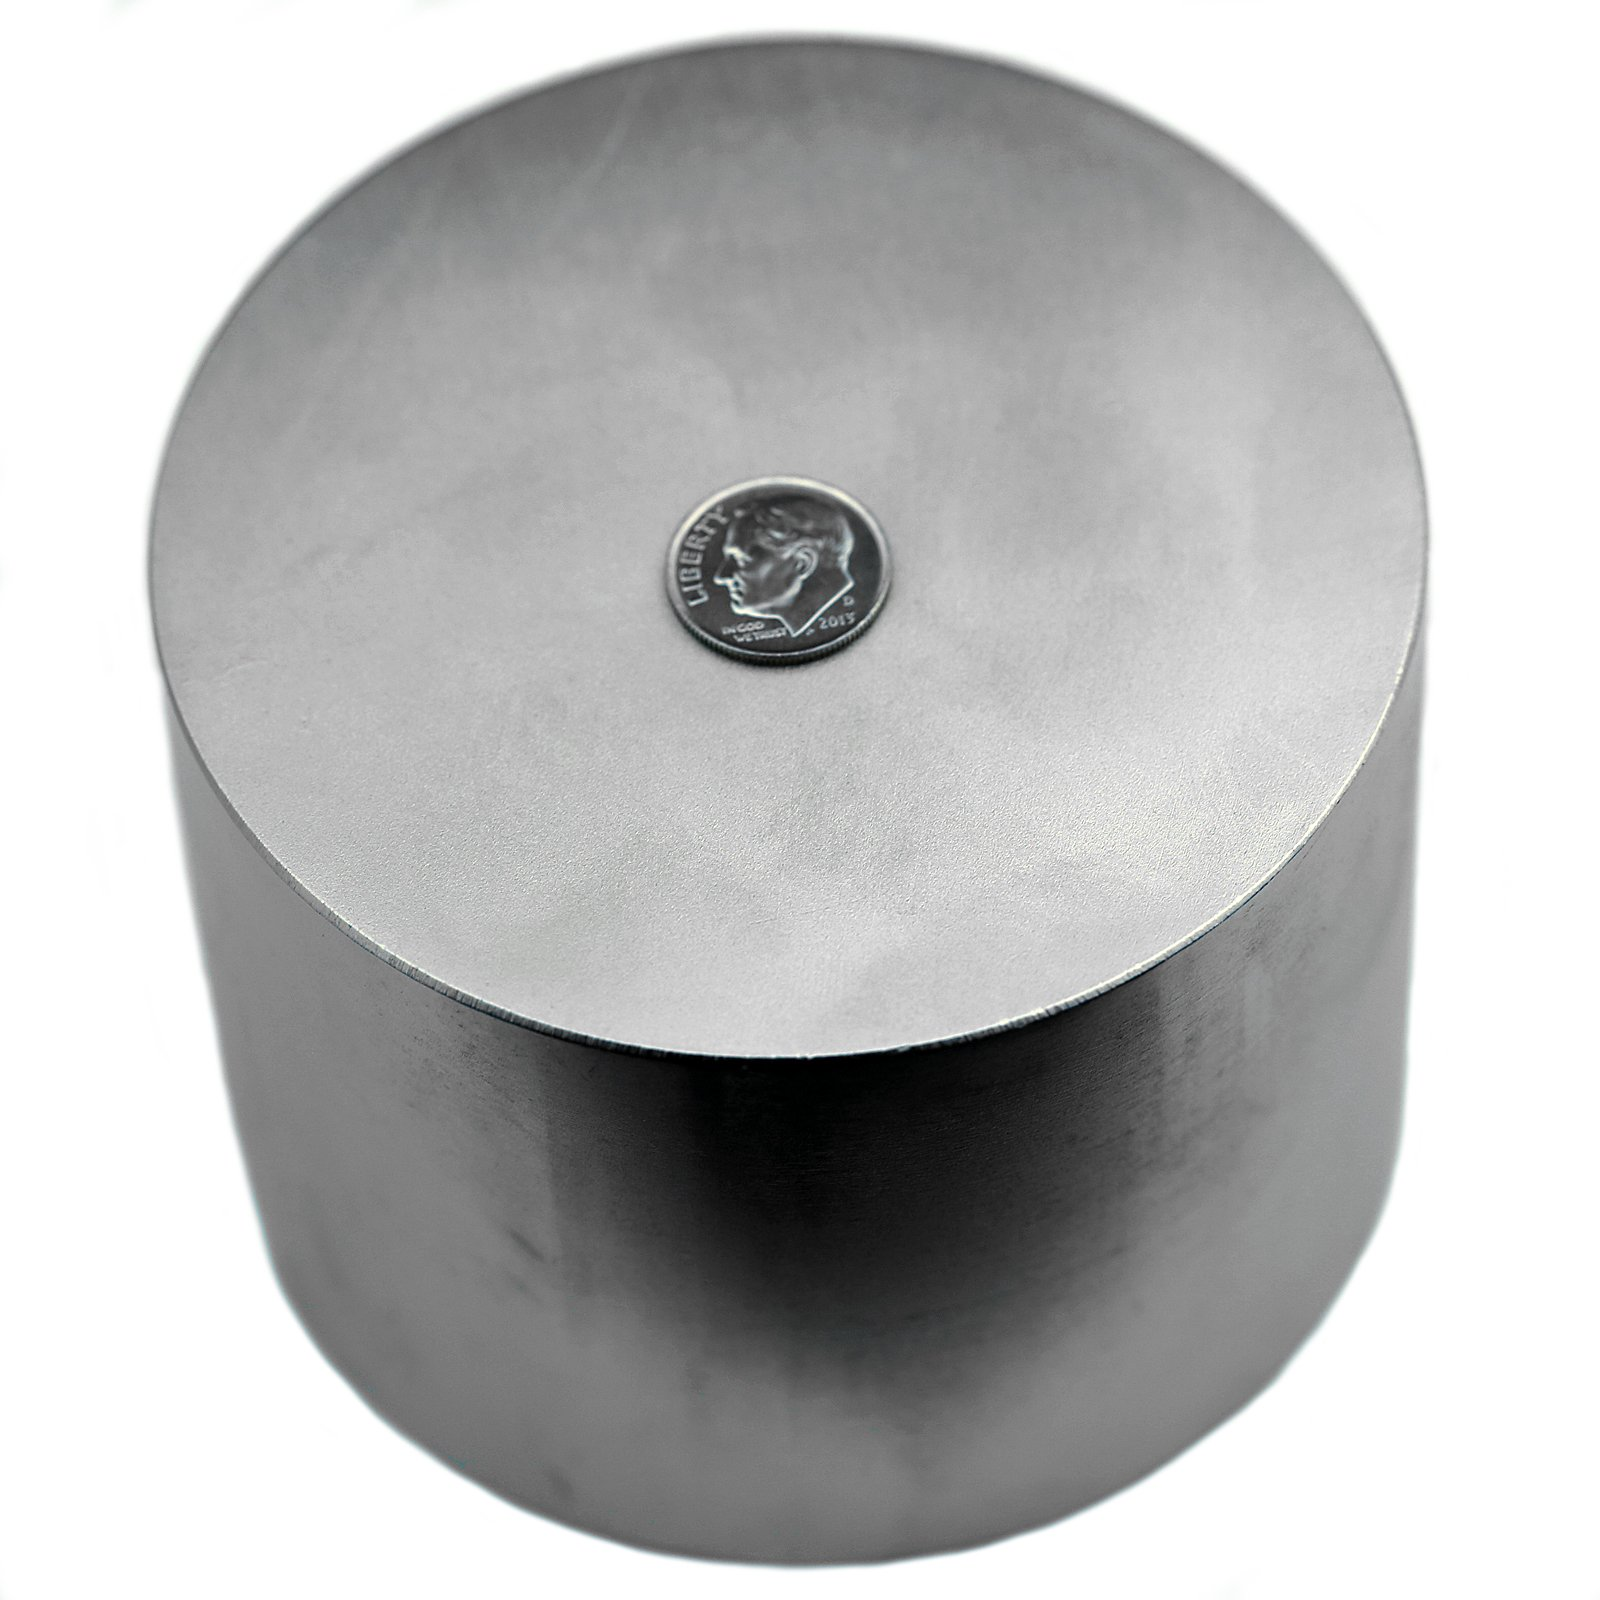 Applied Magnets 3'' x 3'' Super Strong Neodymium Disc Magnet